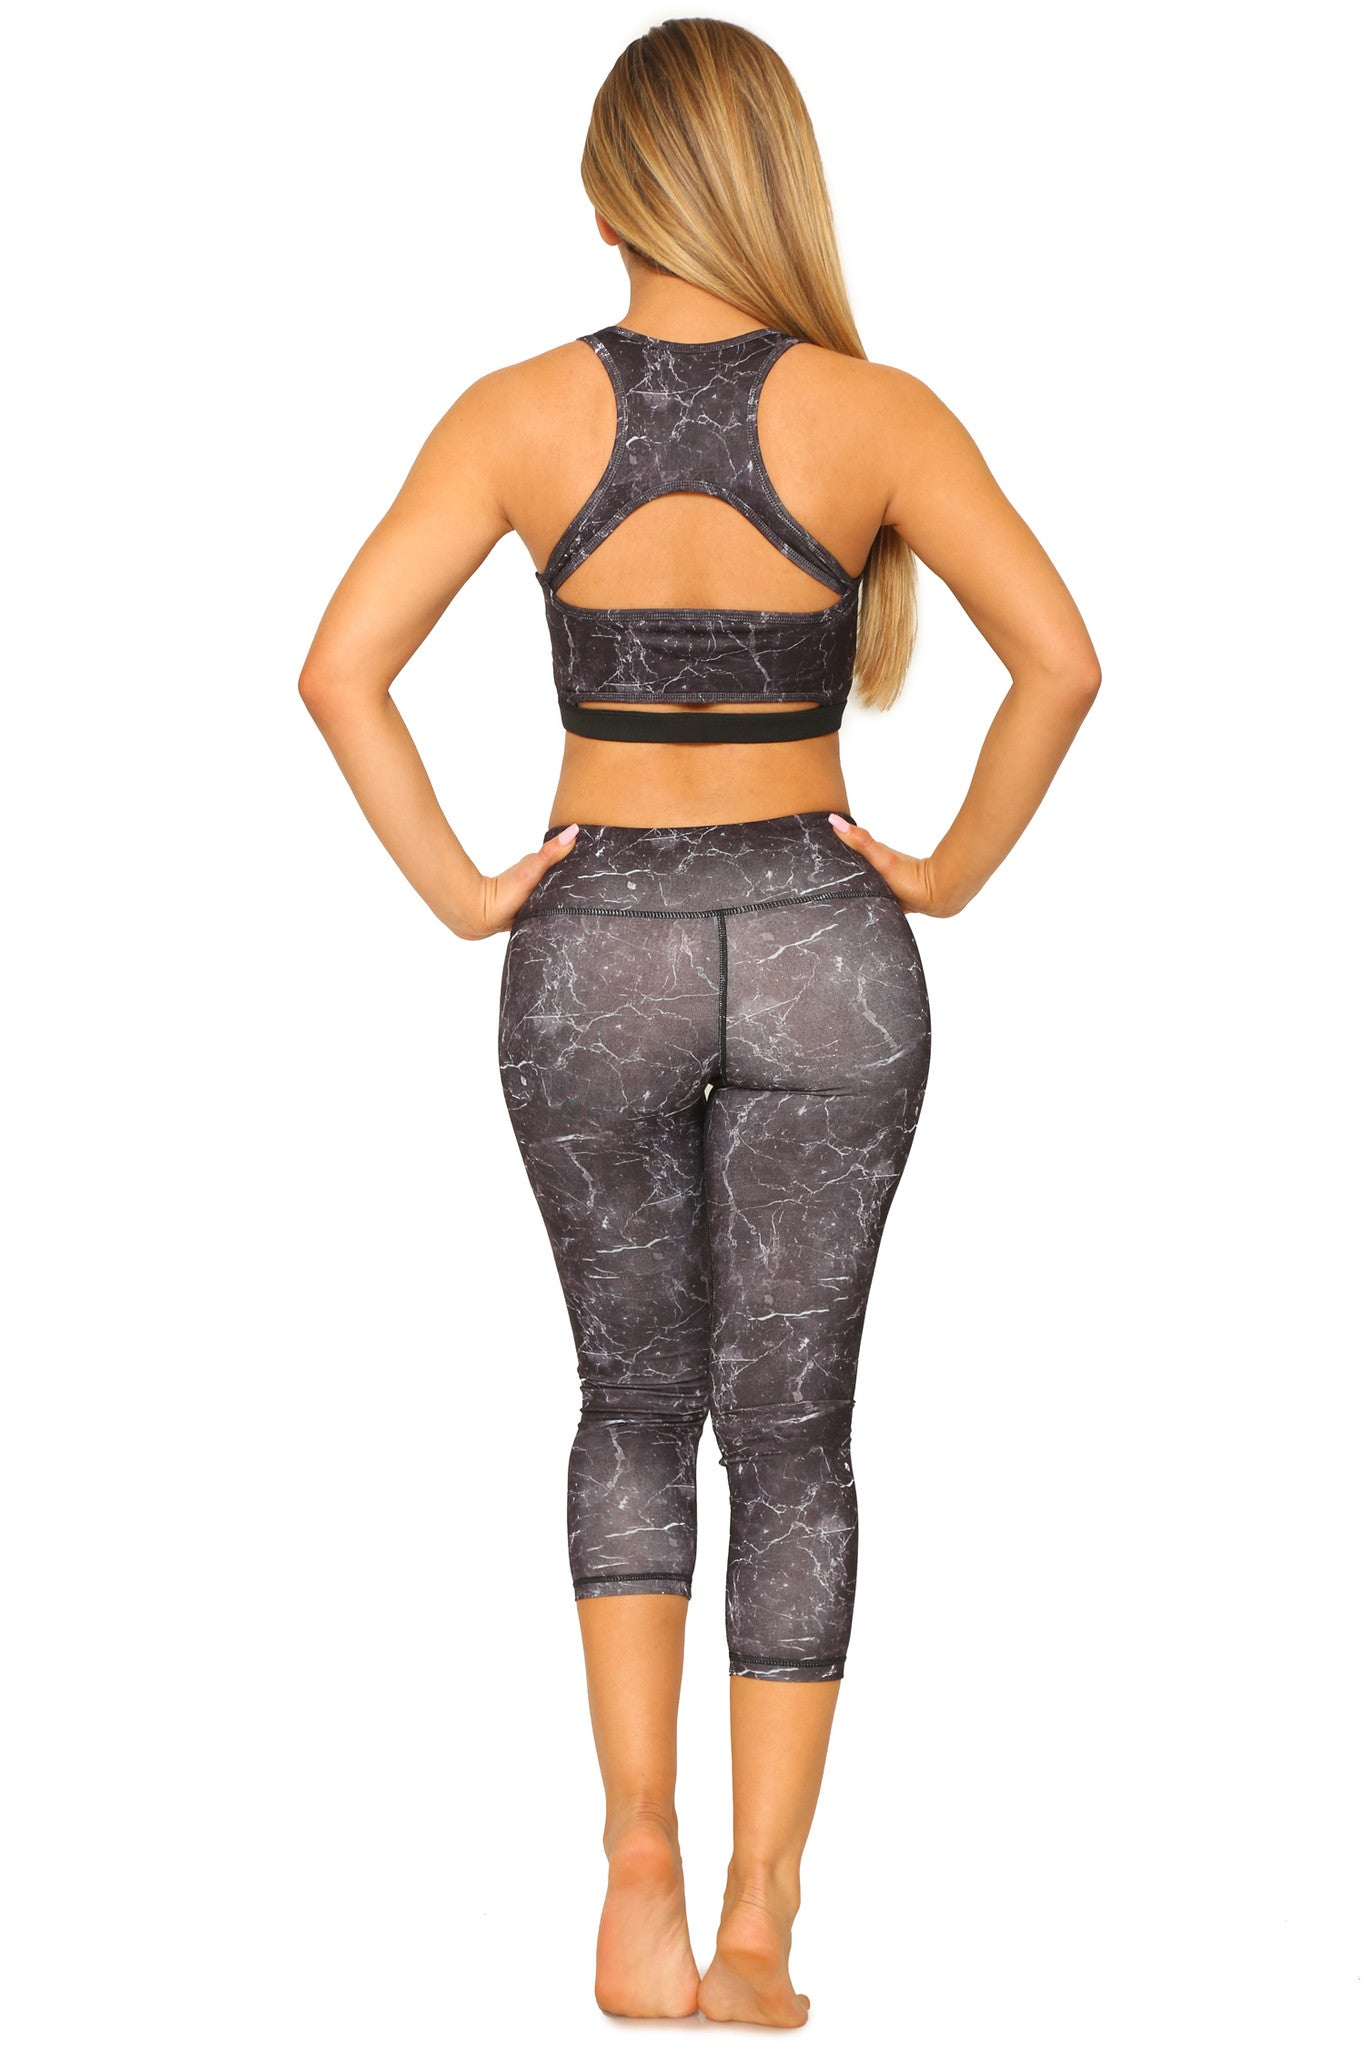 CHERIE WORKOUT SET - Glam Envy - 3